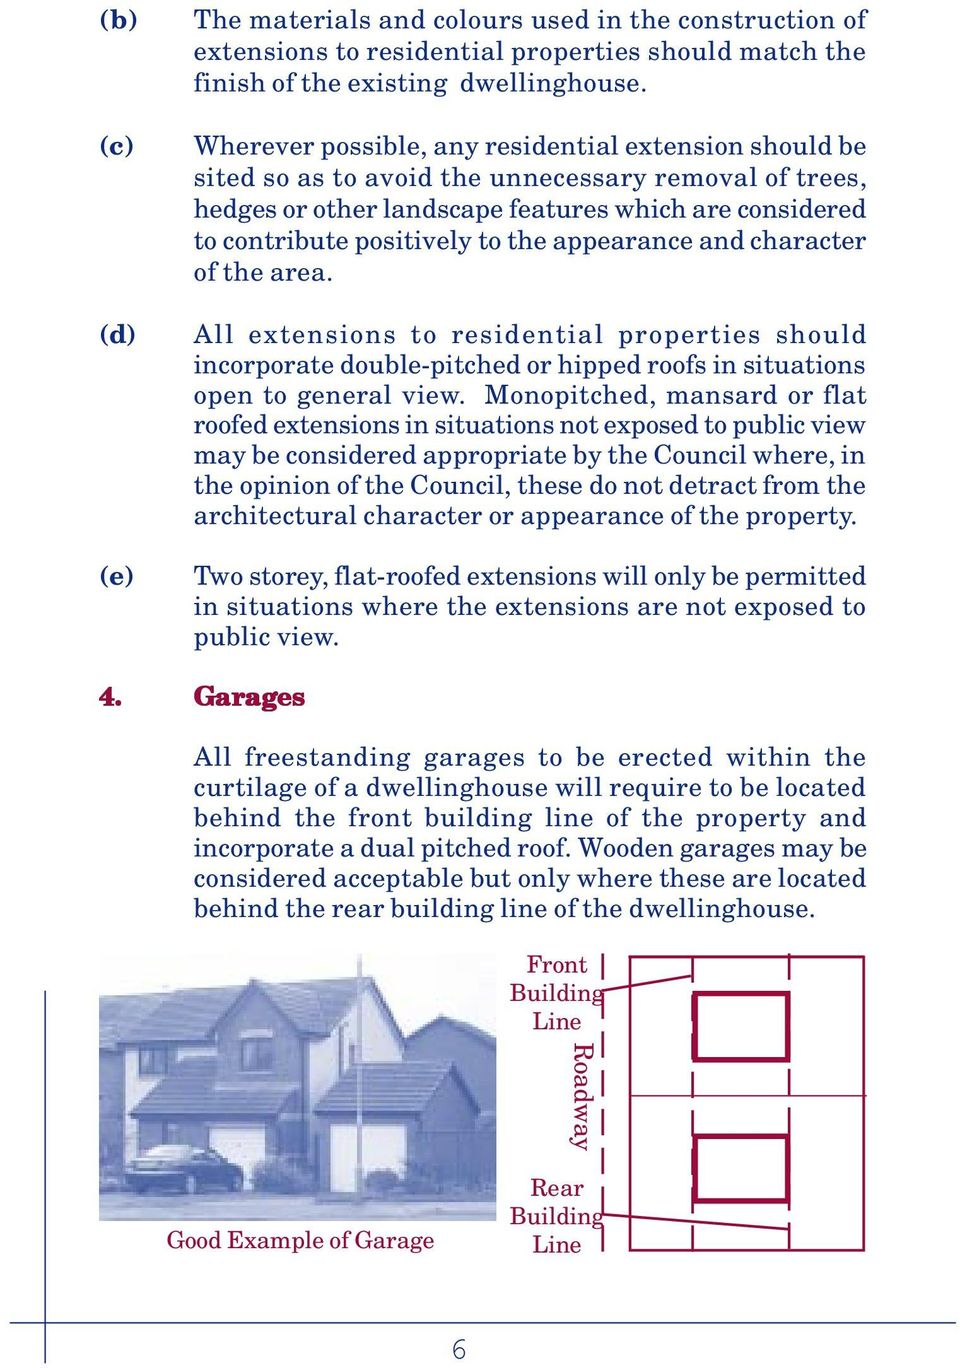 appearance and character of the area. All extensions to residential properties should incorporate double-pitched or hipped roofs in situations open to general view.